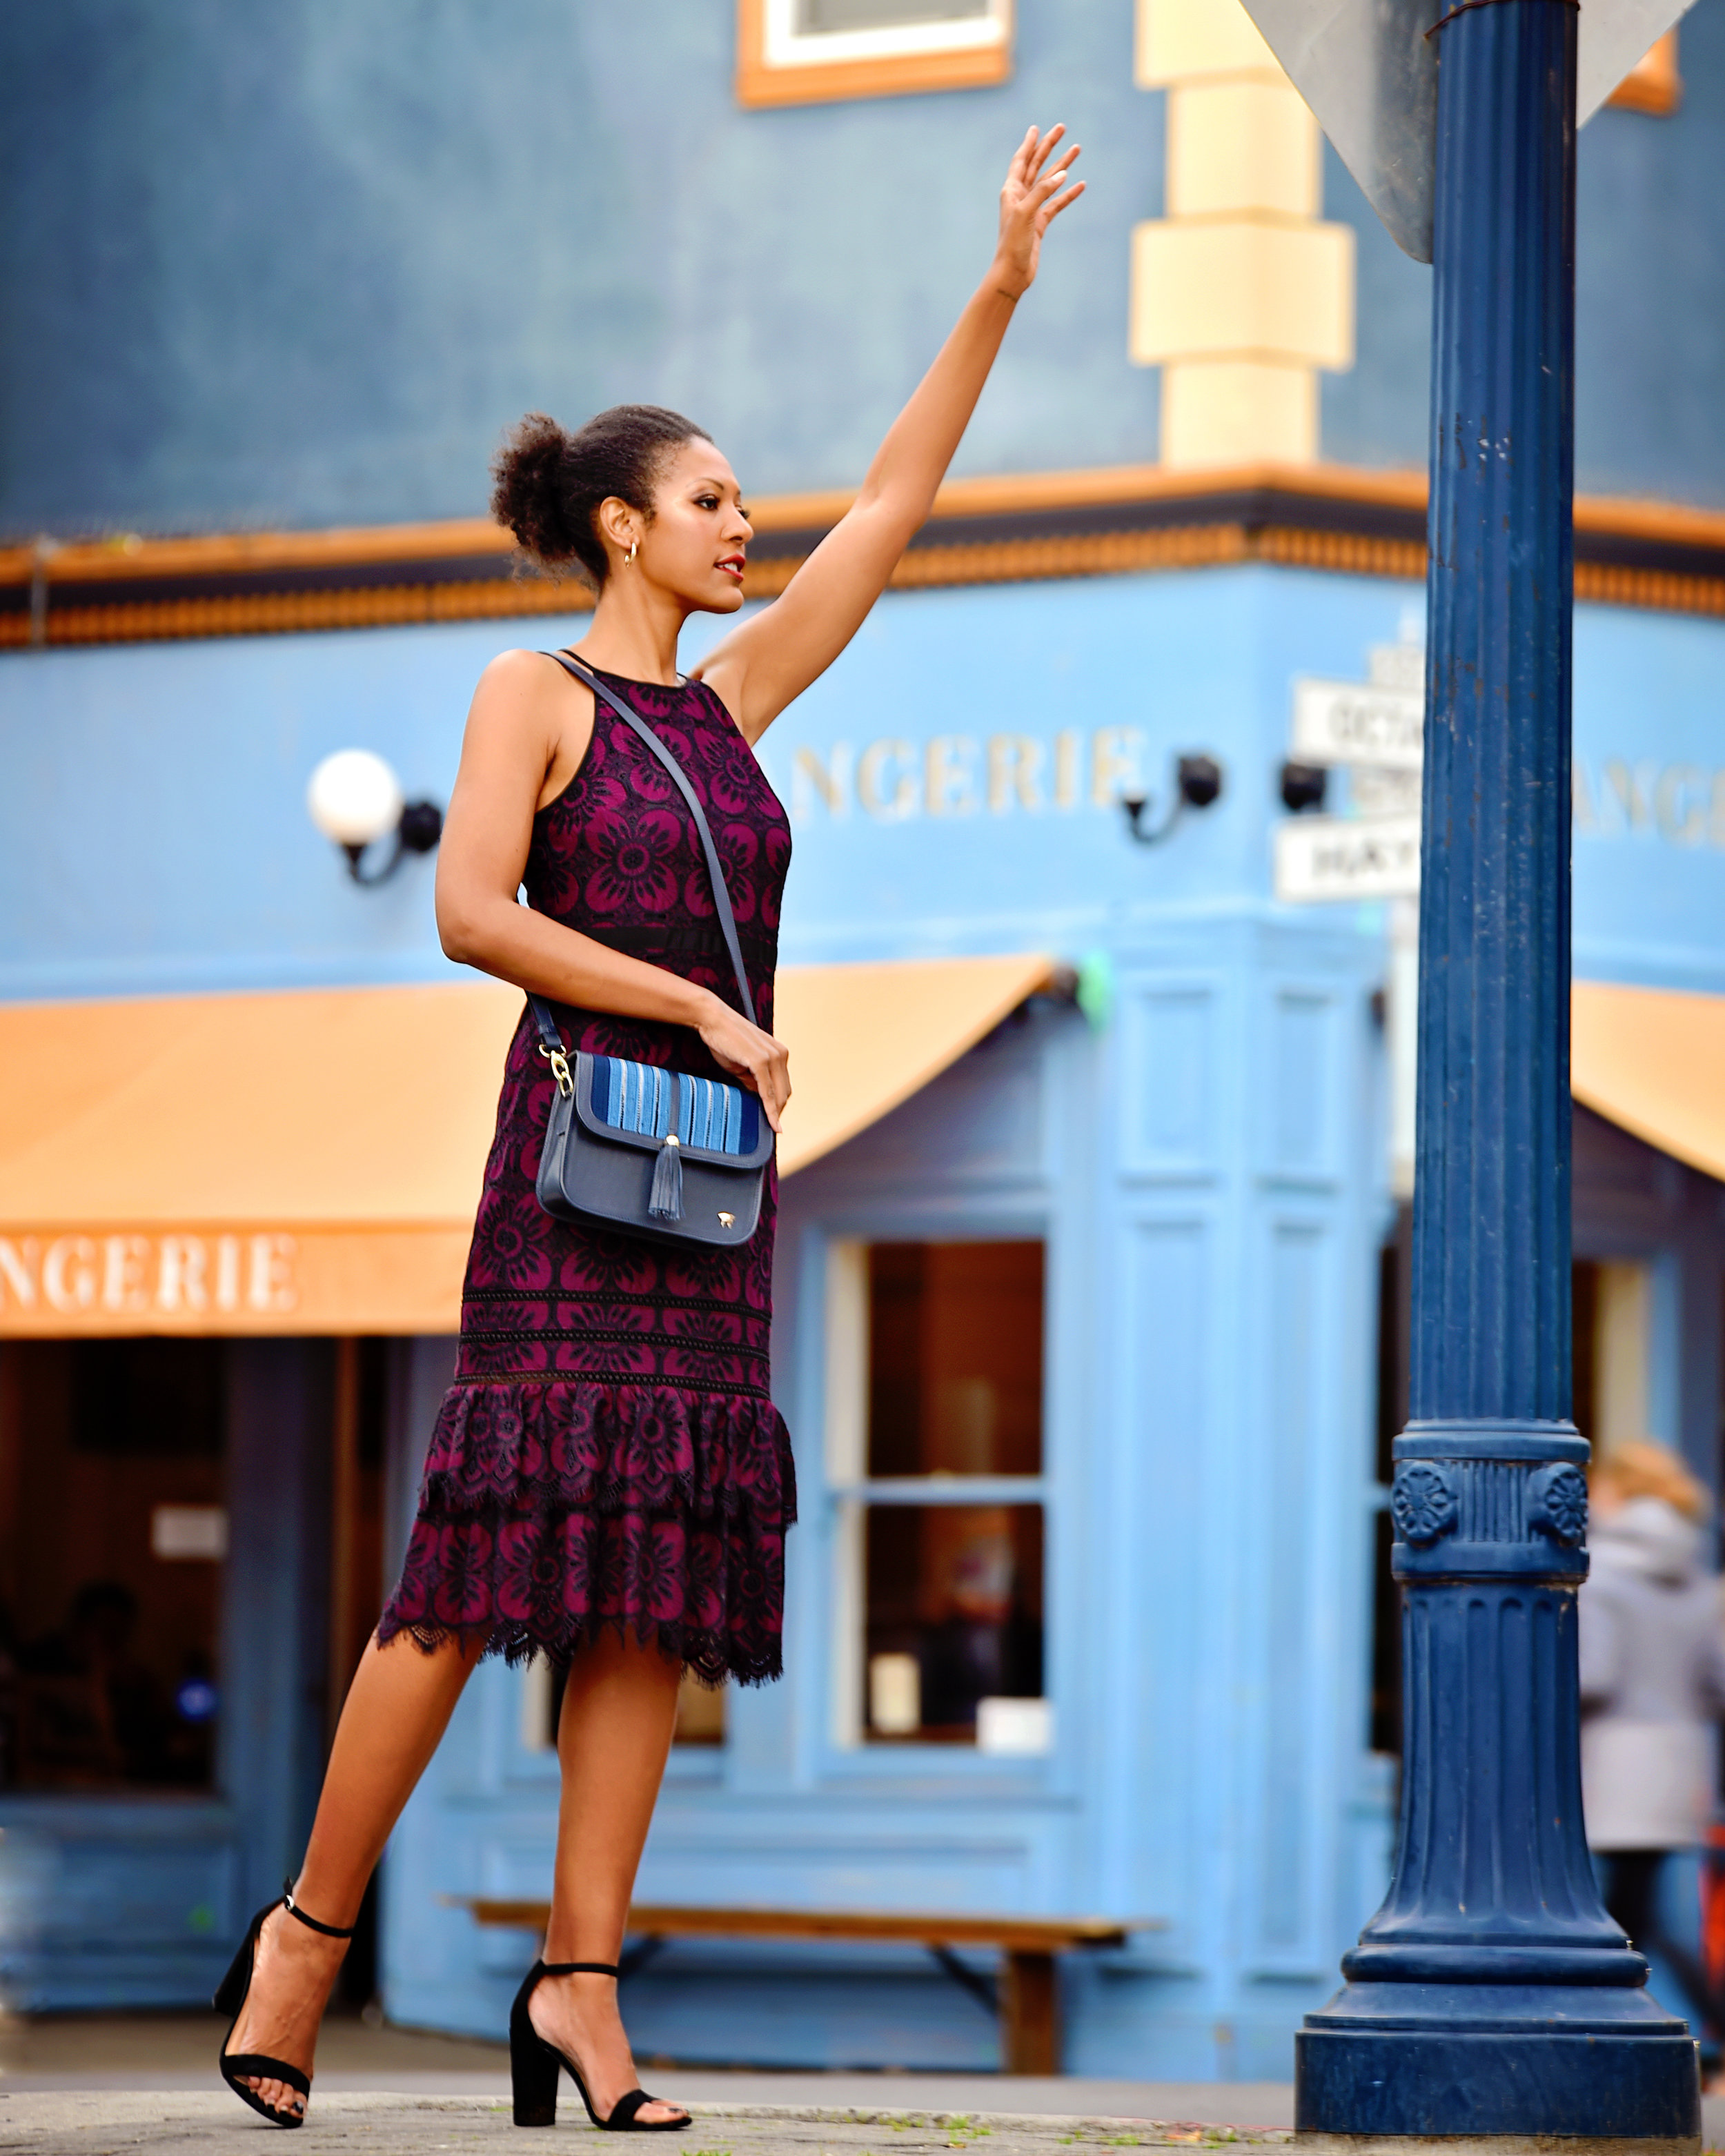 San Francisco fashion campaign shot by Bay Area fashion photographer, Dana Hargitay